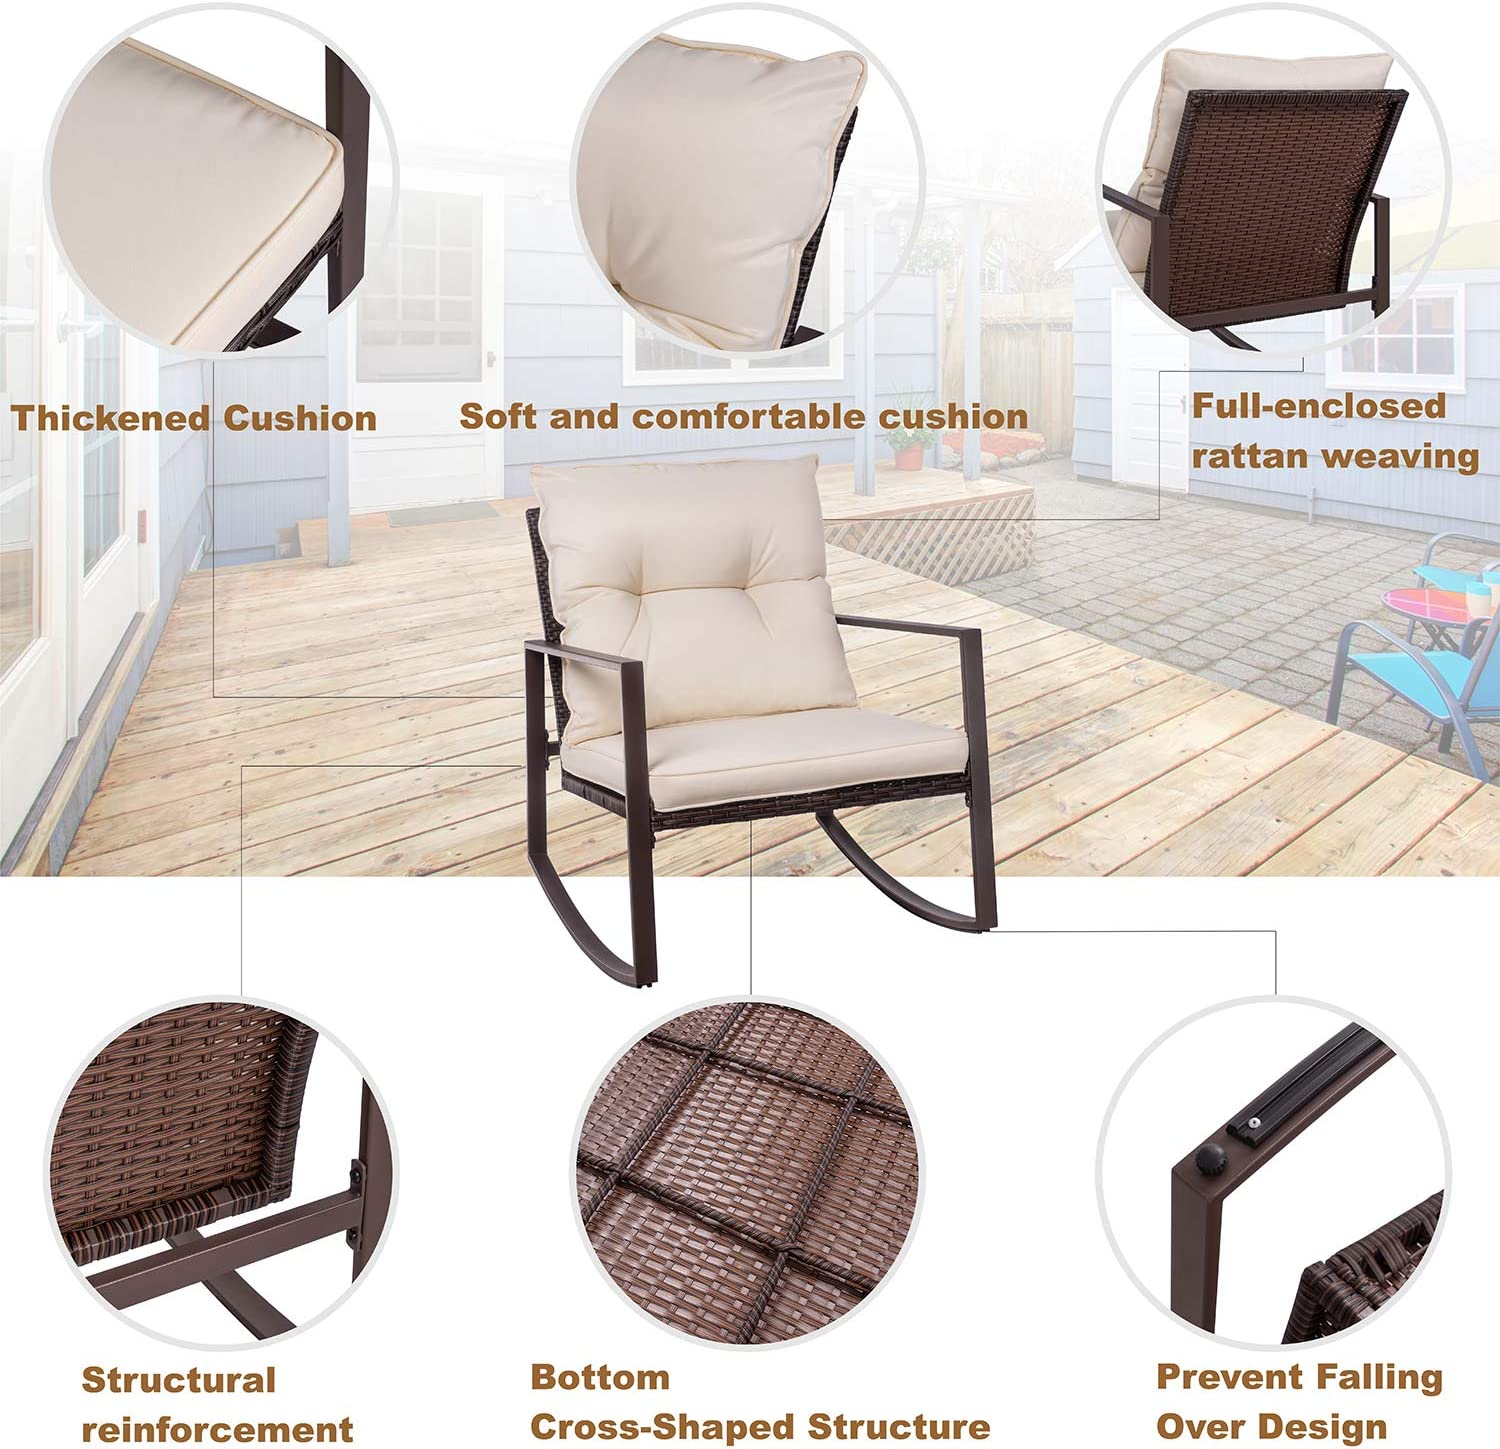 W//Cushions Sun Lounger Set Poly Rattan type2 Festnight Set of 2 Outdoor Patio Wicker Chaise Lounge Chair,1 Table